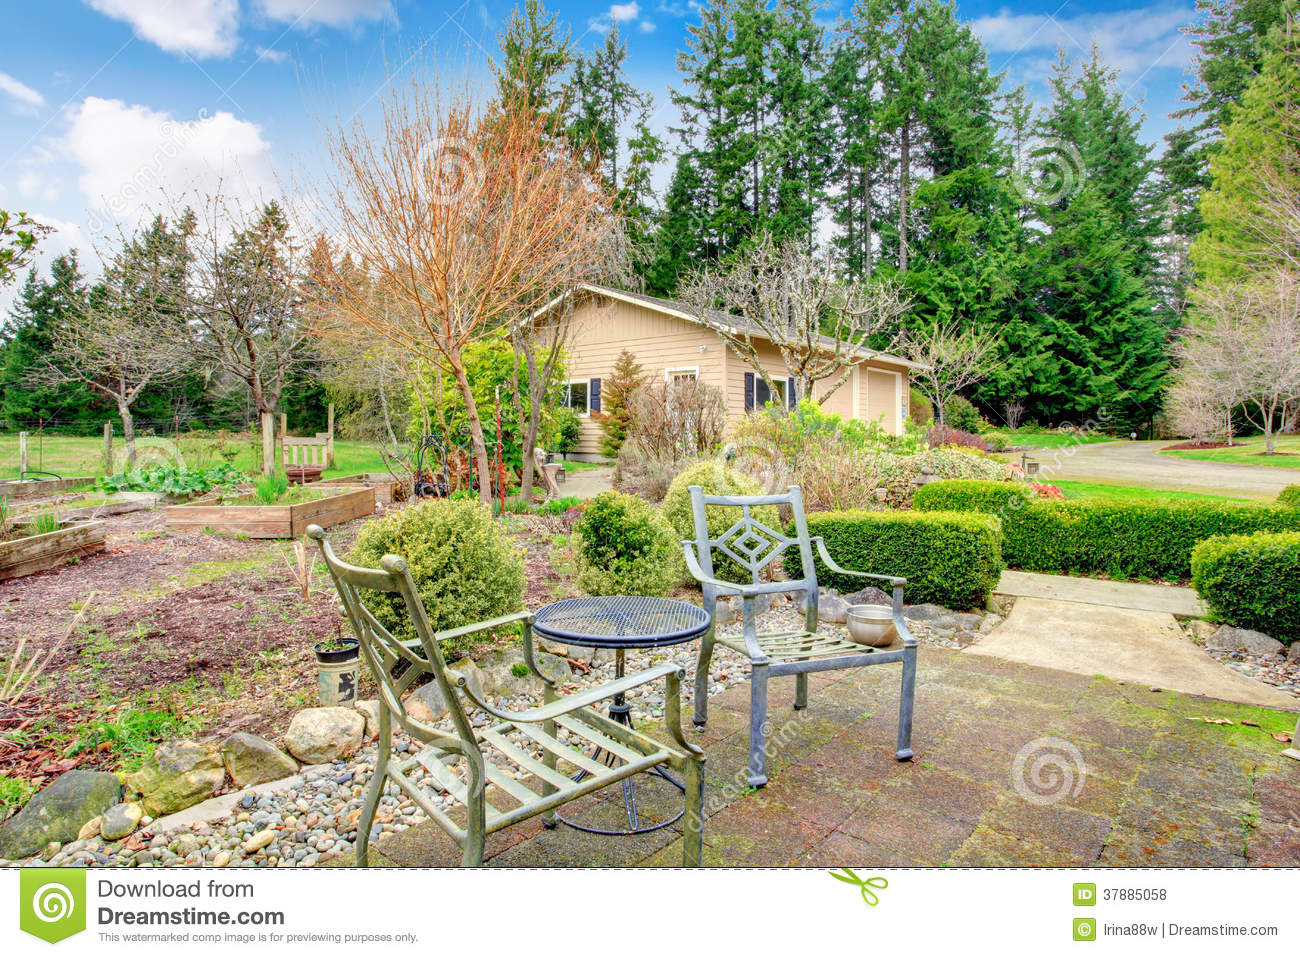 Spring garden with antique chairs and table royalty free stock photos image 37885058 - Countryside dream gardens ...